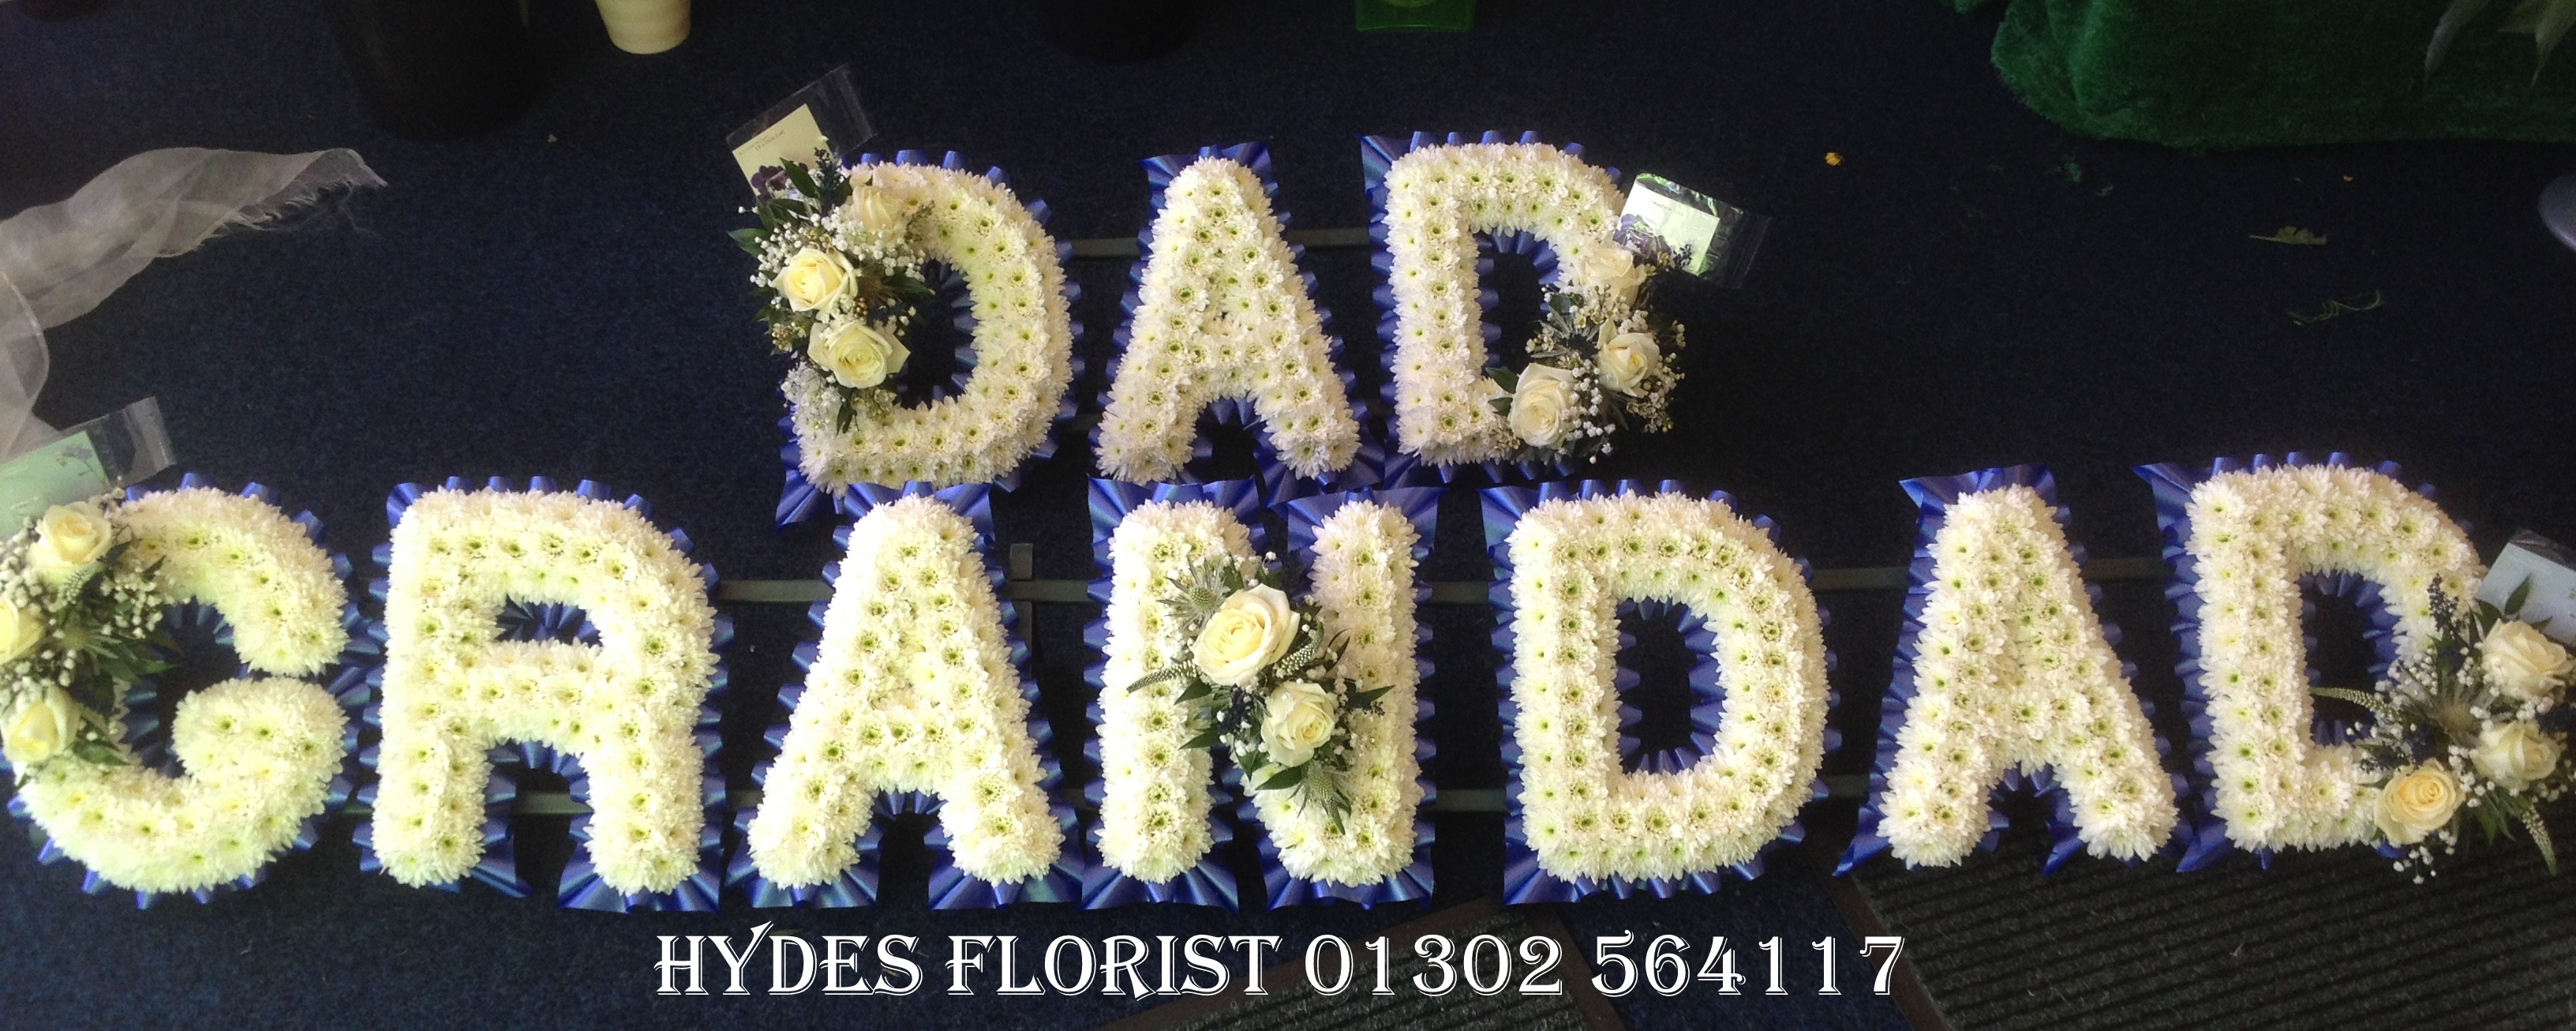 Hydes florist bespoke funeral tributes gallery funeral letters hydes florist doncaster izmirmasajfo